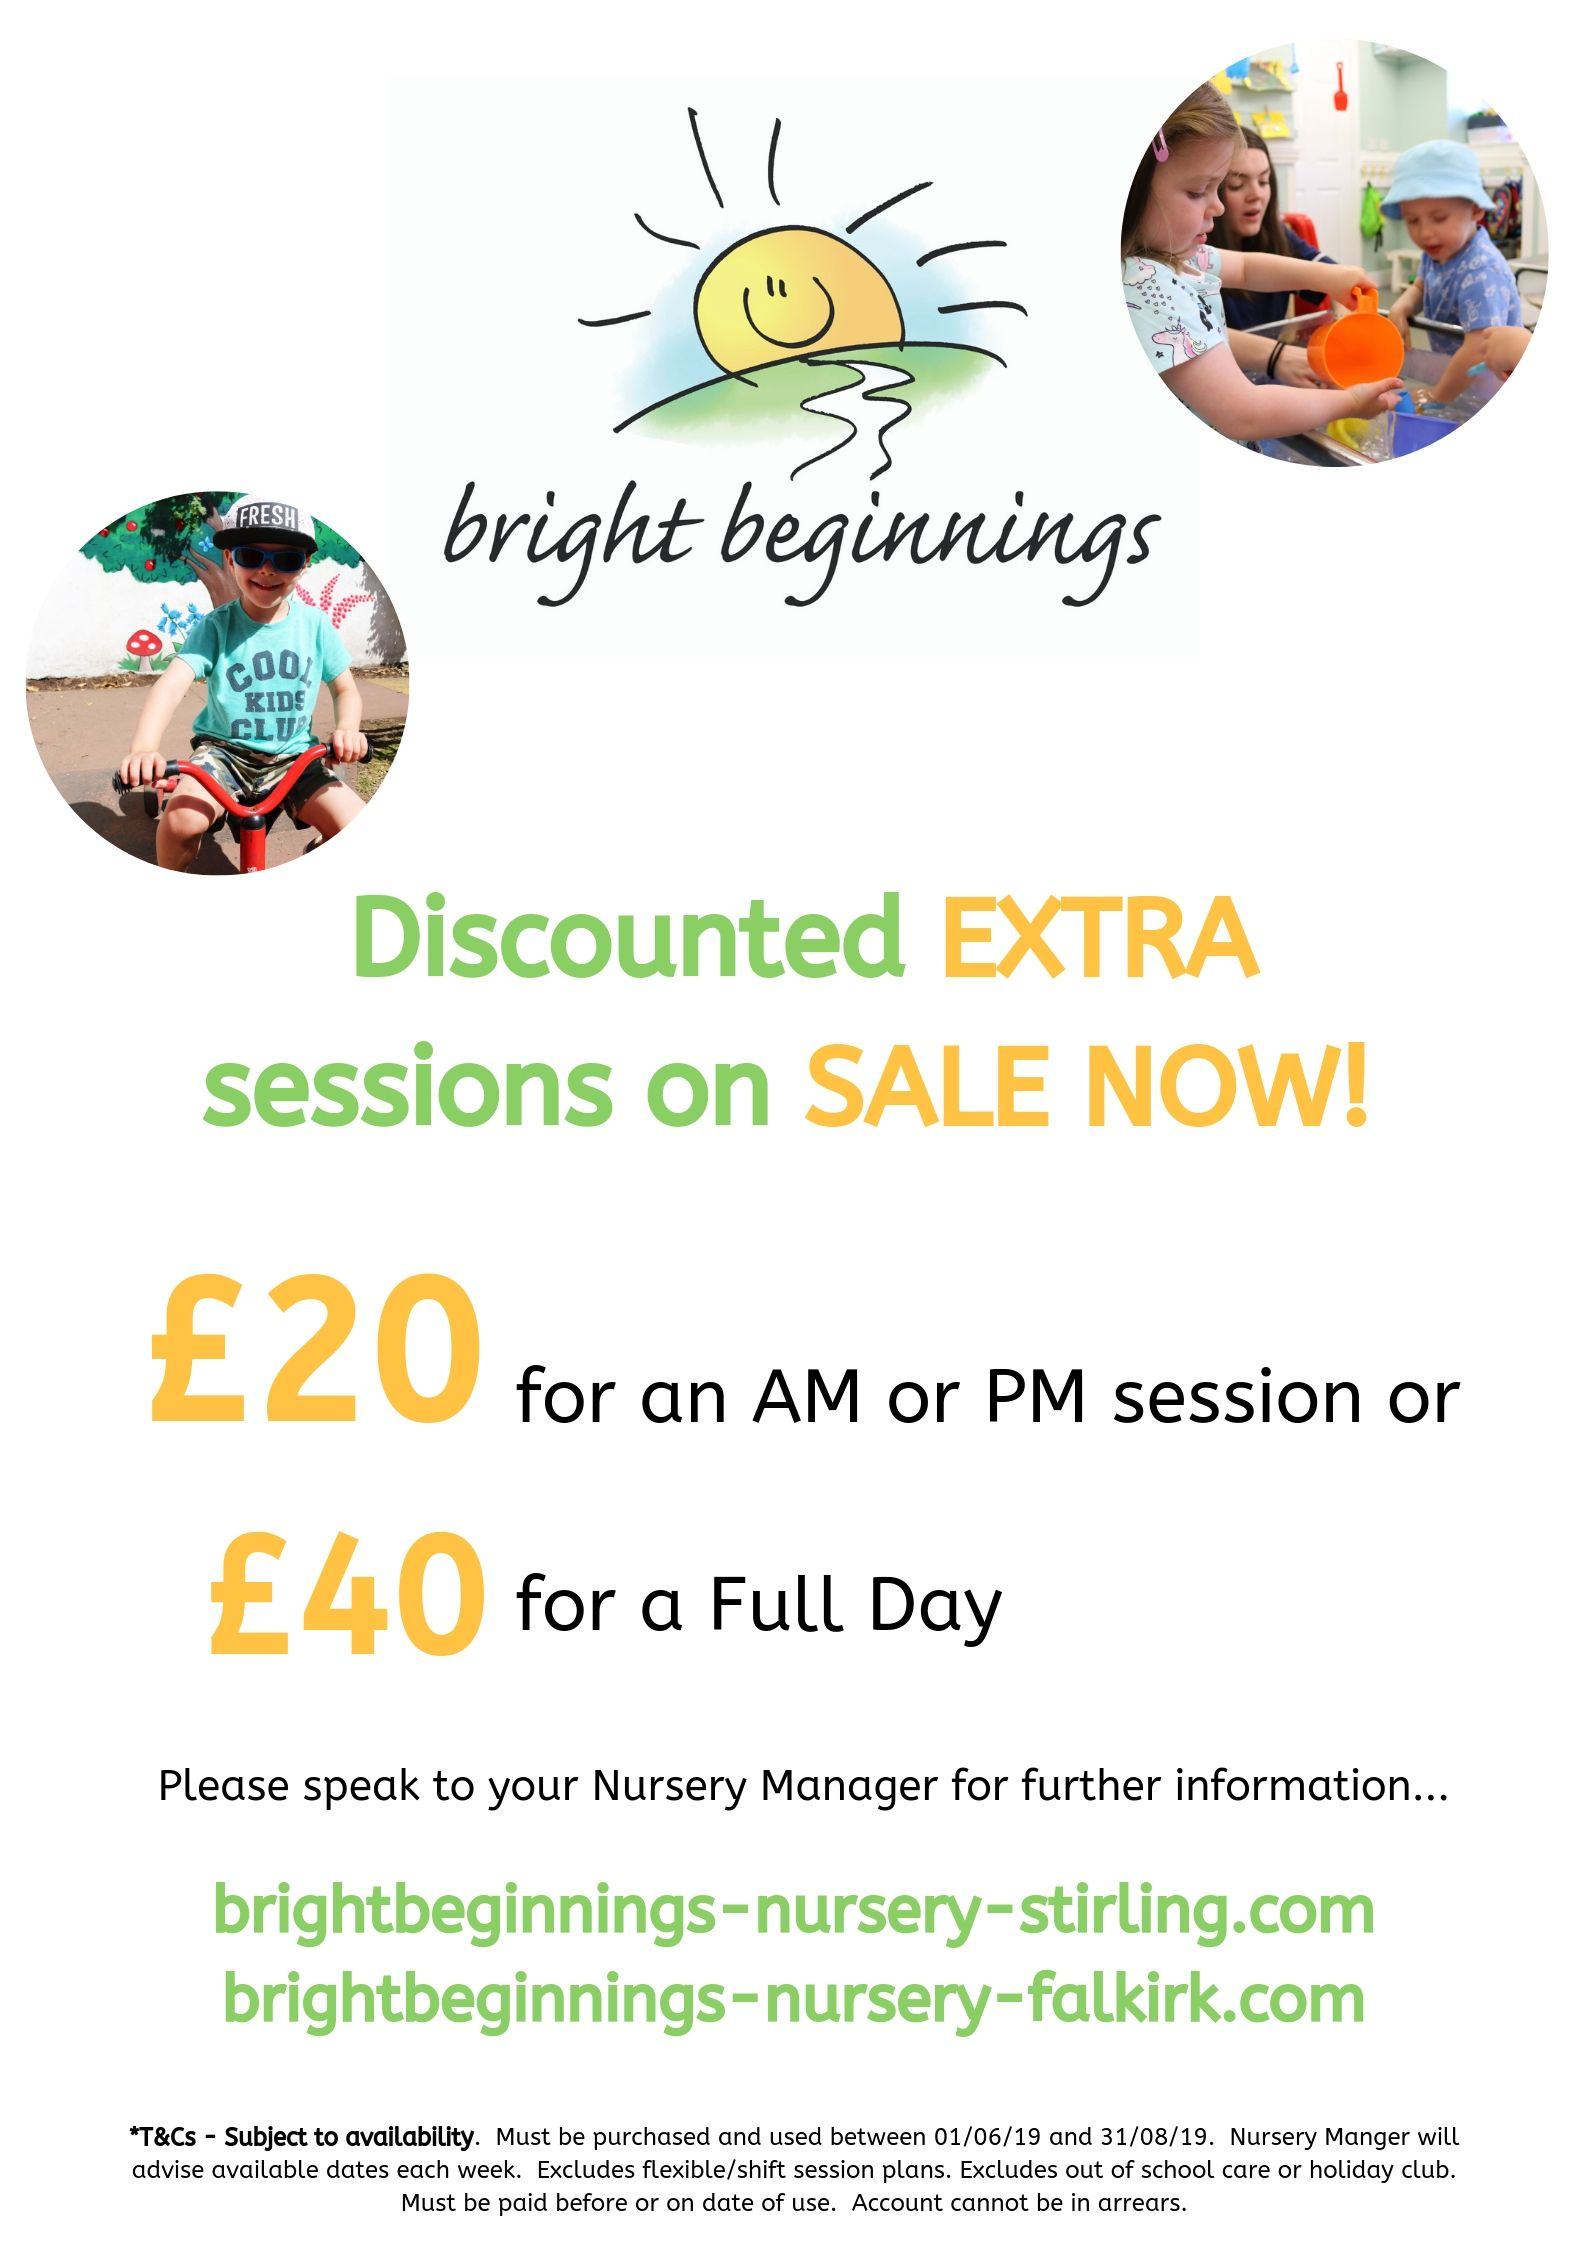 Discounted sessions Bright Beginnings nursery Falkirk